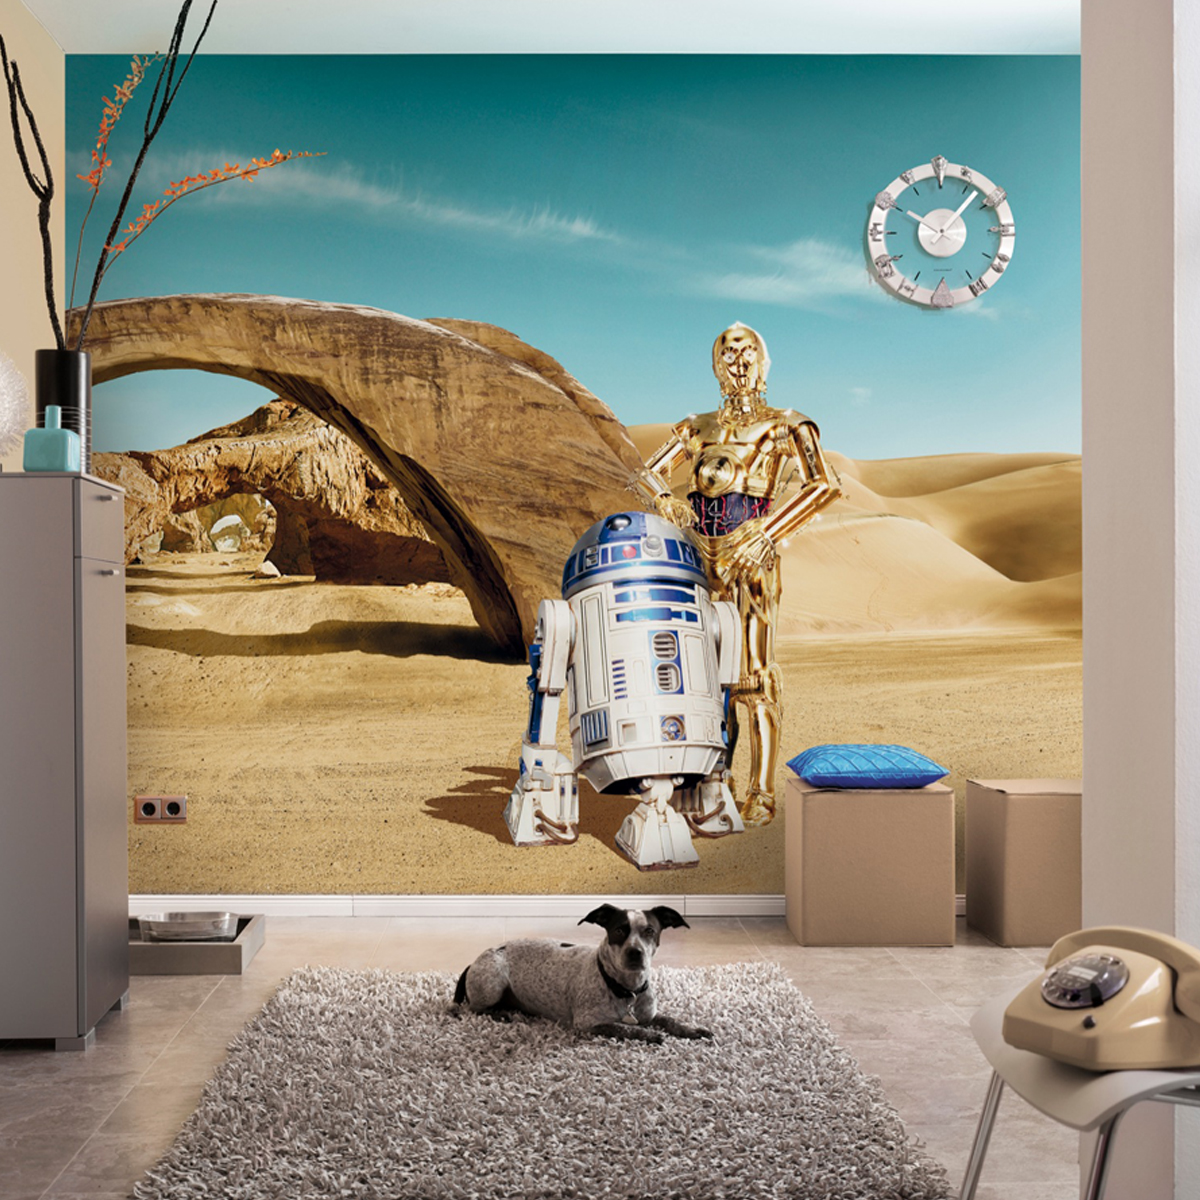 star papier peint r2d2 c3po wars 368 x 254 cm. Black Bedroom Furniture Sets. Home Design Ideas